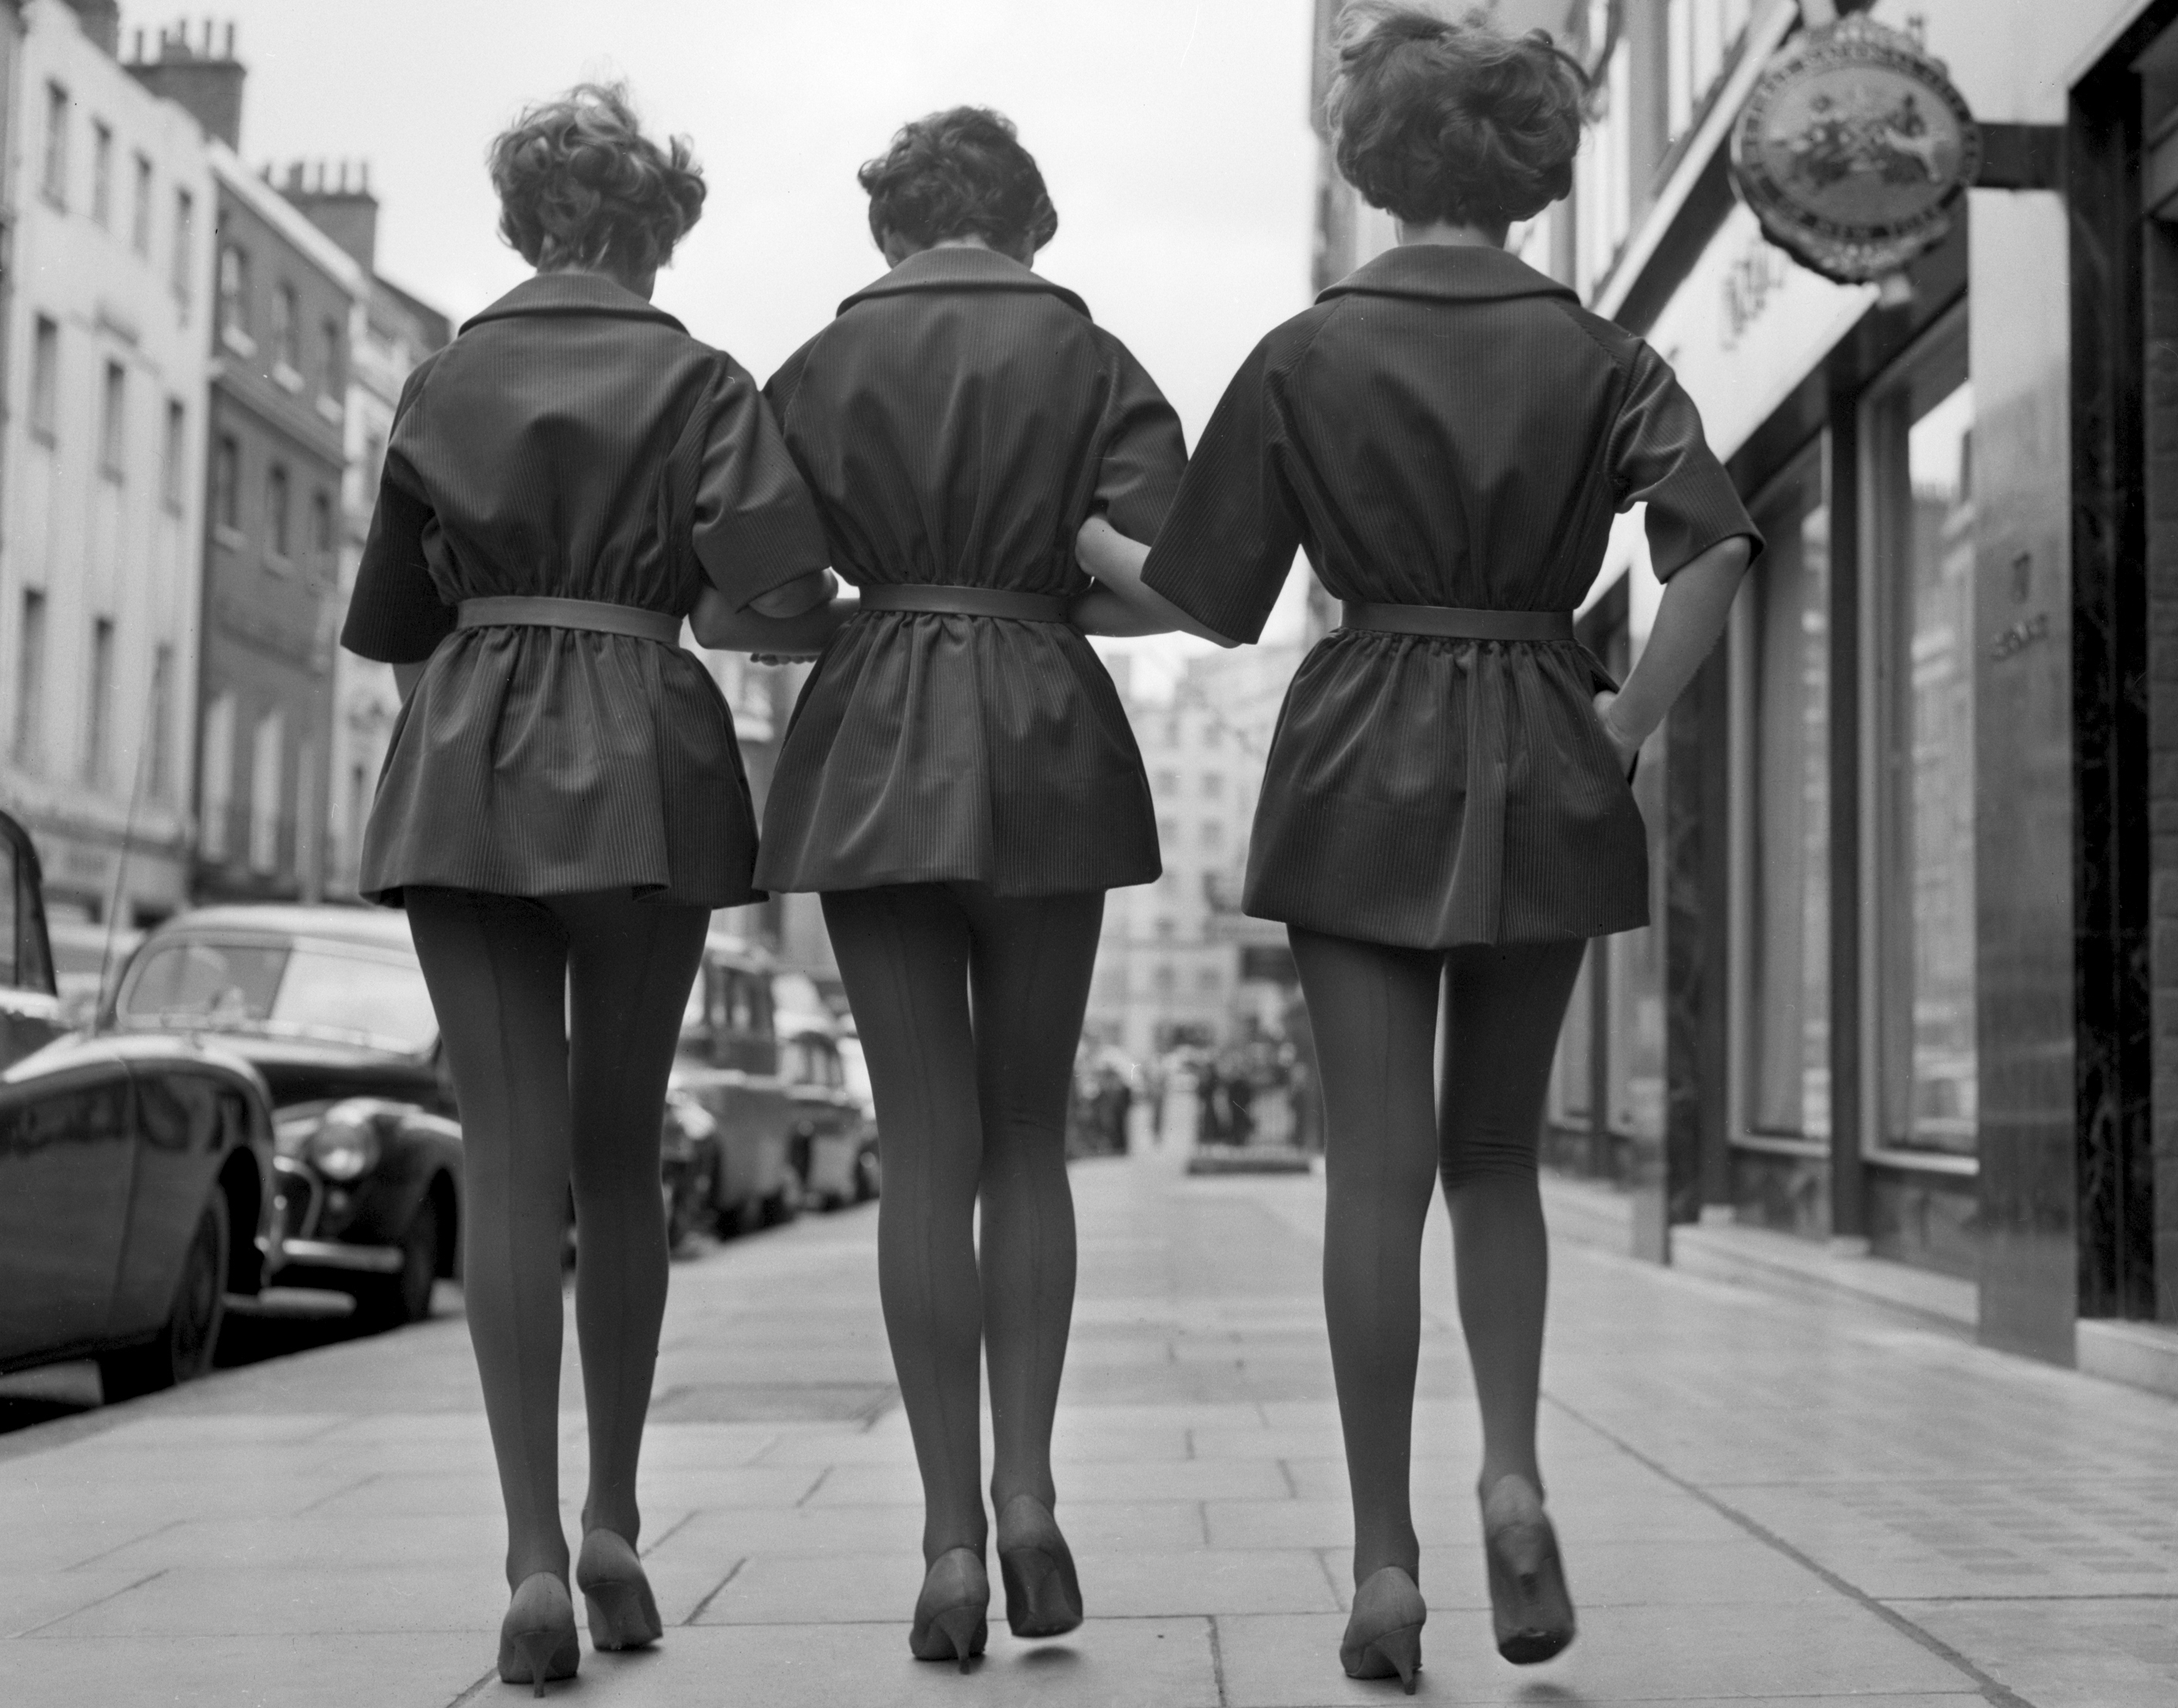 A black and white photograph showing teenage girls walking in beat-style outfits.